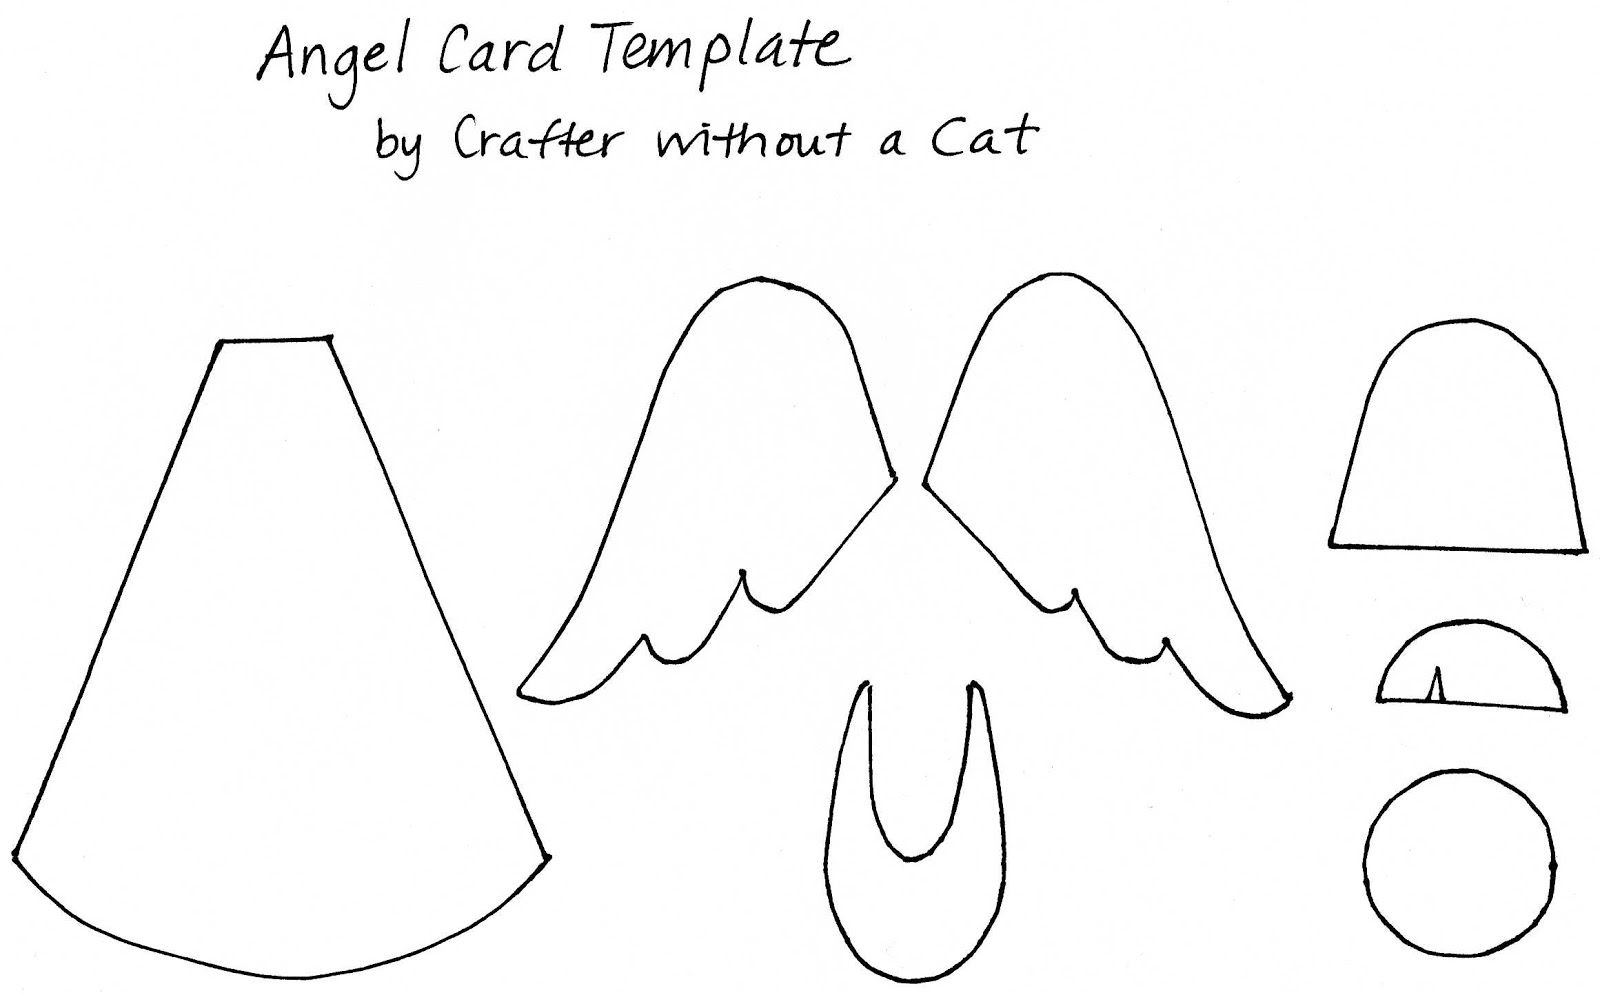 Crafter Without A Cat Angel Card